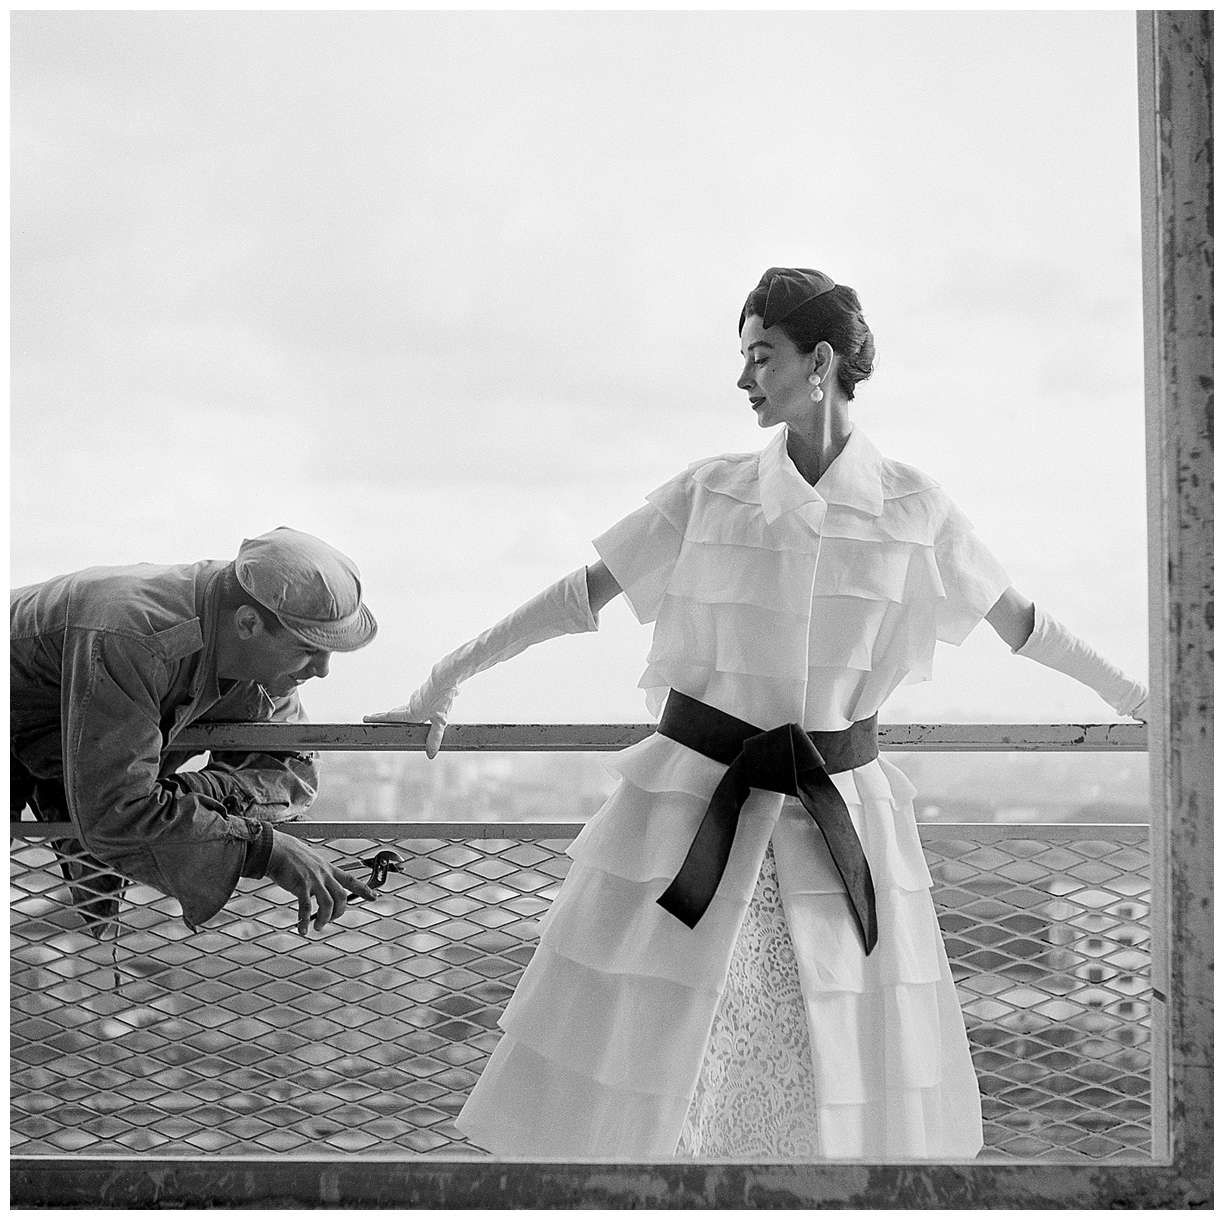 Dorian Leigh at the balcony 1954, Photo Georges Dambier